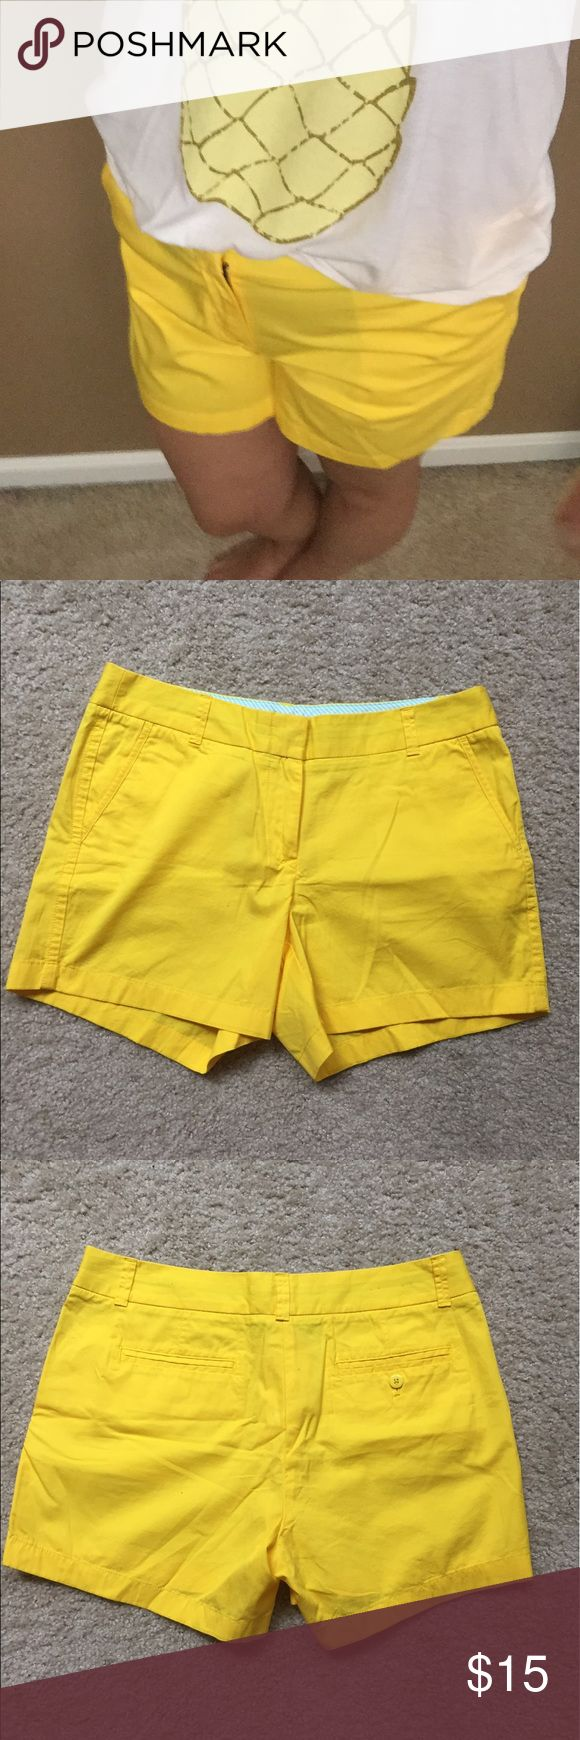 JCrew Chino Shorts - yellow Like New Condition! These shorts are perfect summer shirts that can be worn casually or dressed up for evening activities. The color is bright, but not too over the top. The inseam is longer to ensure full coverage. I love wearing these with wedges a netural shirt and statement necklace. They will compliment any pair of sun kissed legs! J. Crew Factory Shorts